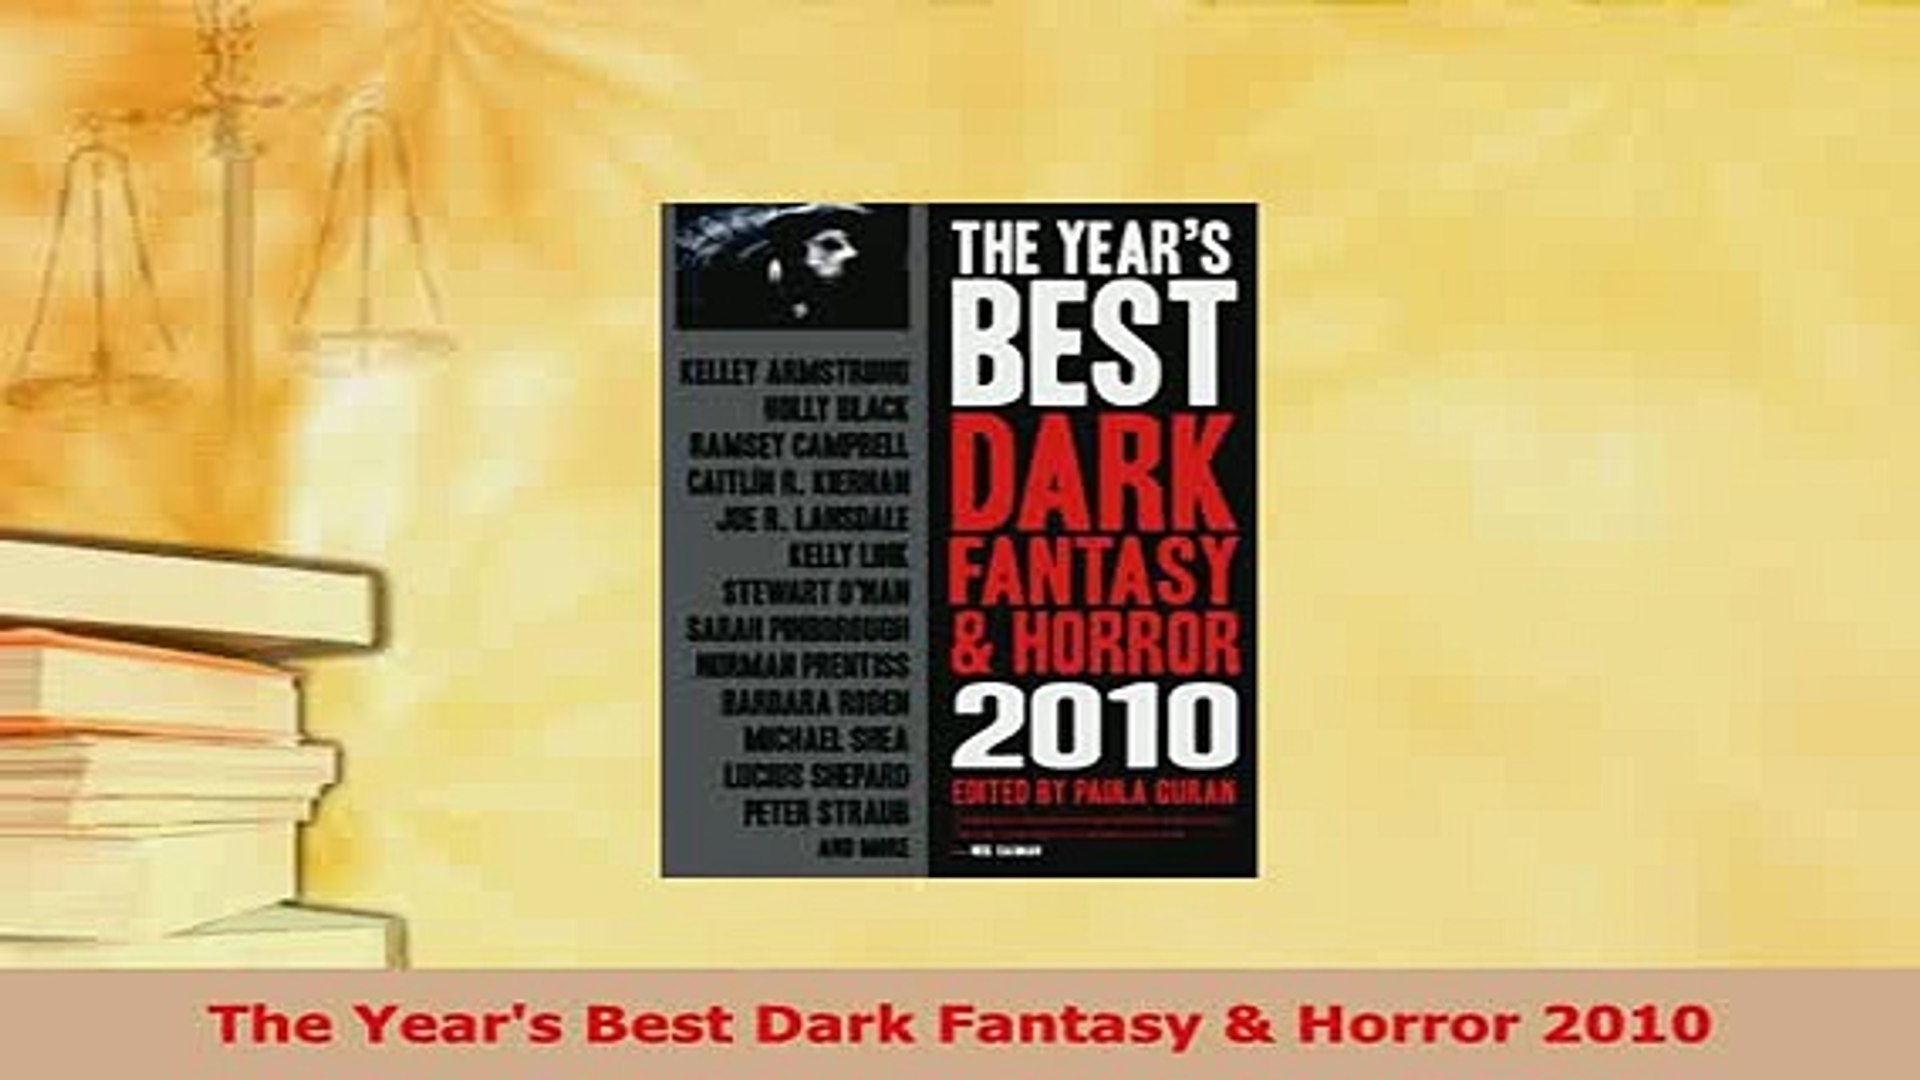 The Years Best Dark Fantasy & Horror 2010